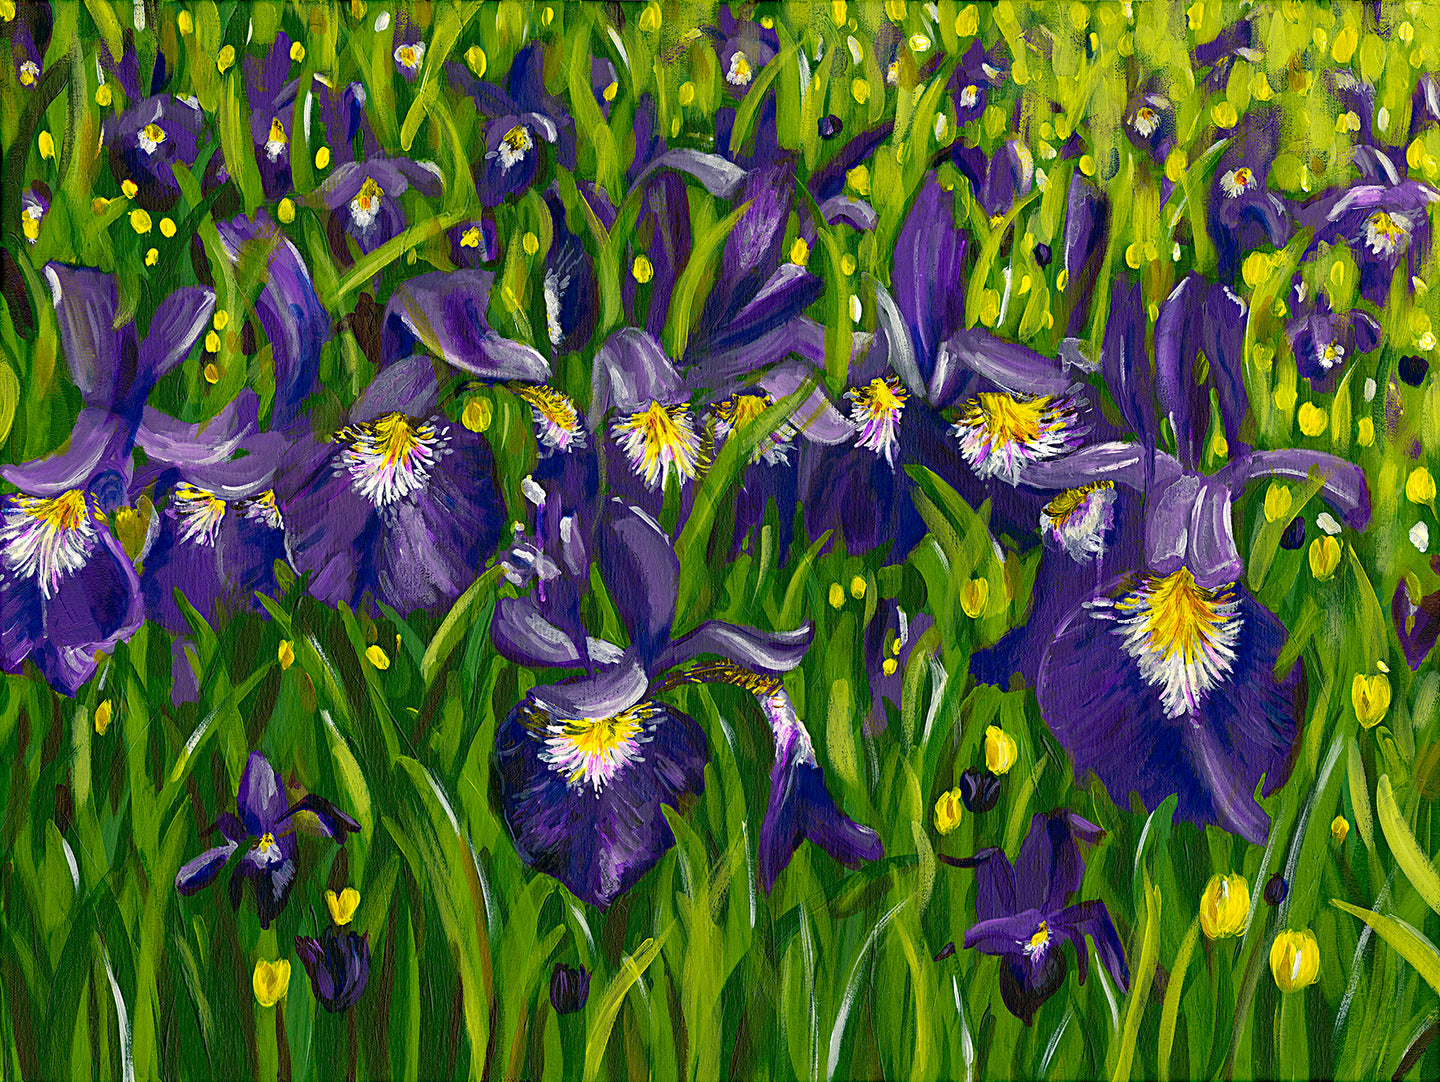 Large Acrylic Painting Iris Field Landscape, floral, flowers, colourful, interior decor, abstract art, purple, green, yellow, white paint, judy century, original canvas painting, deep edge